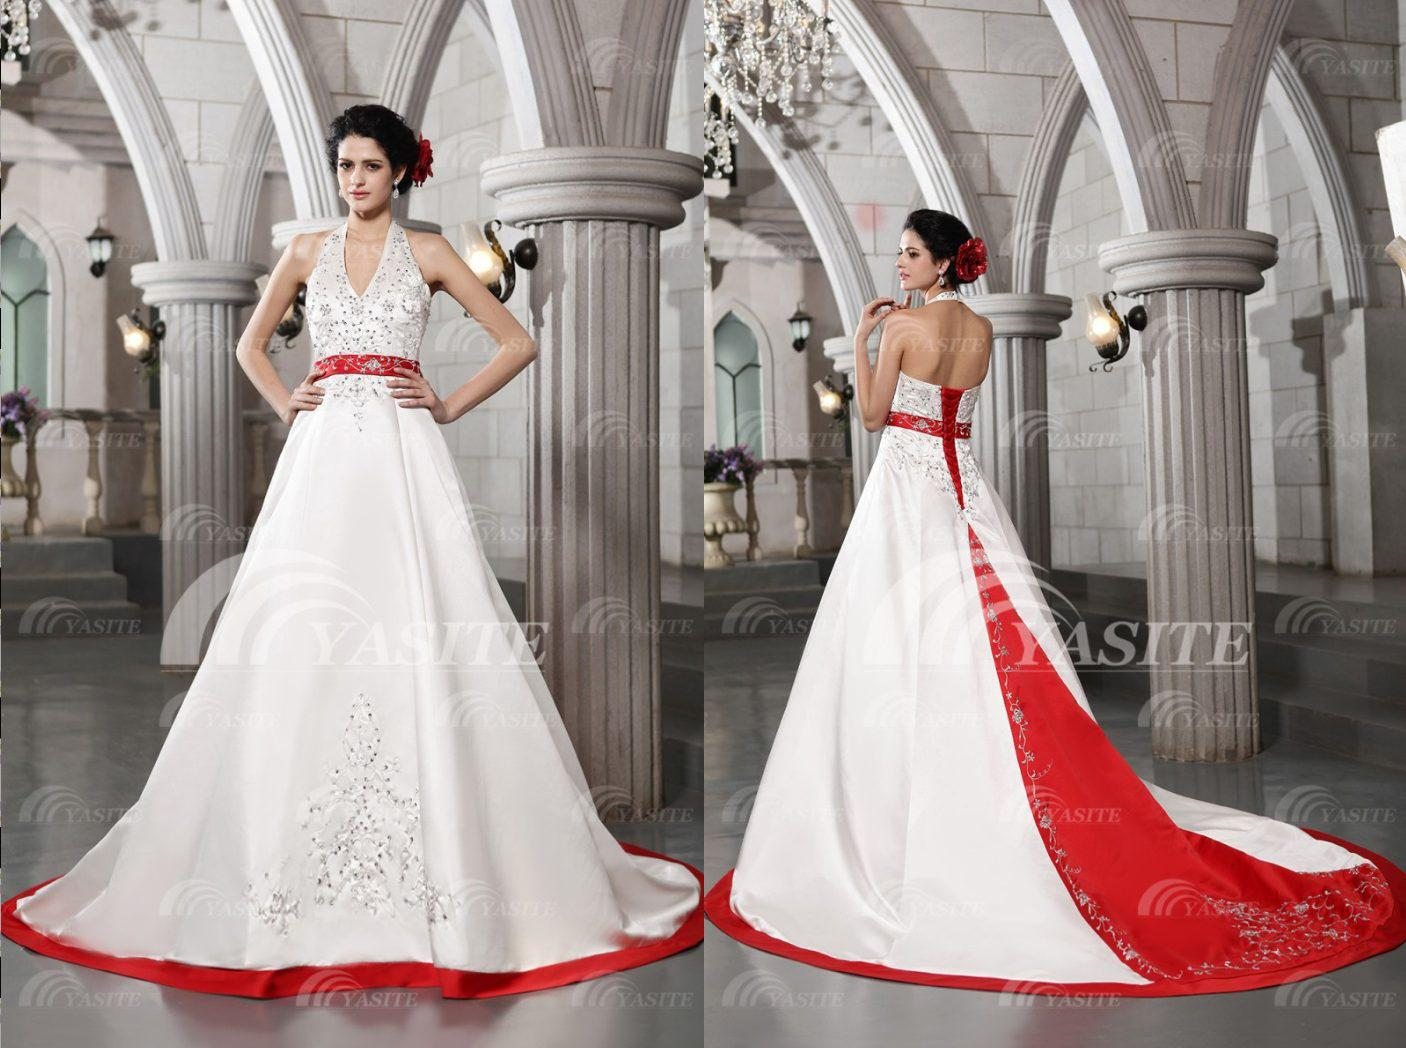 Red Wedding Gown — The Knot